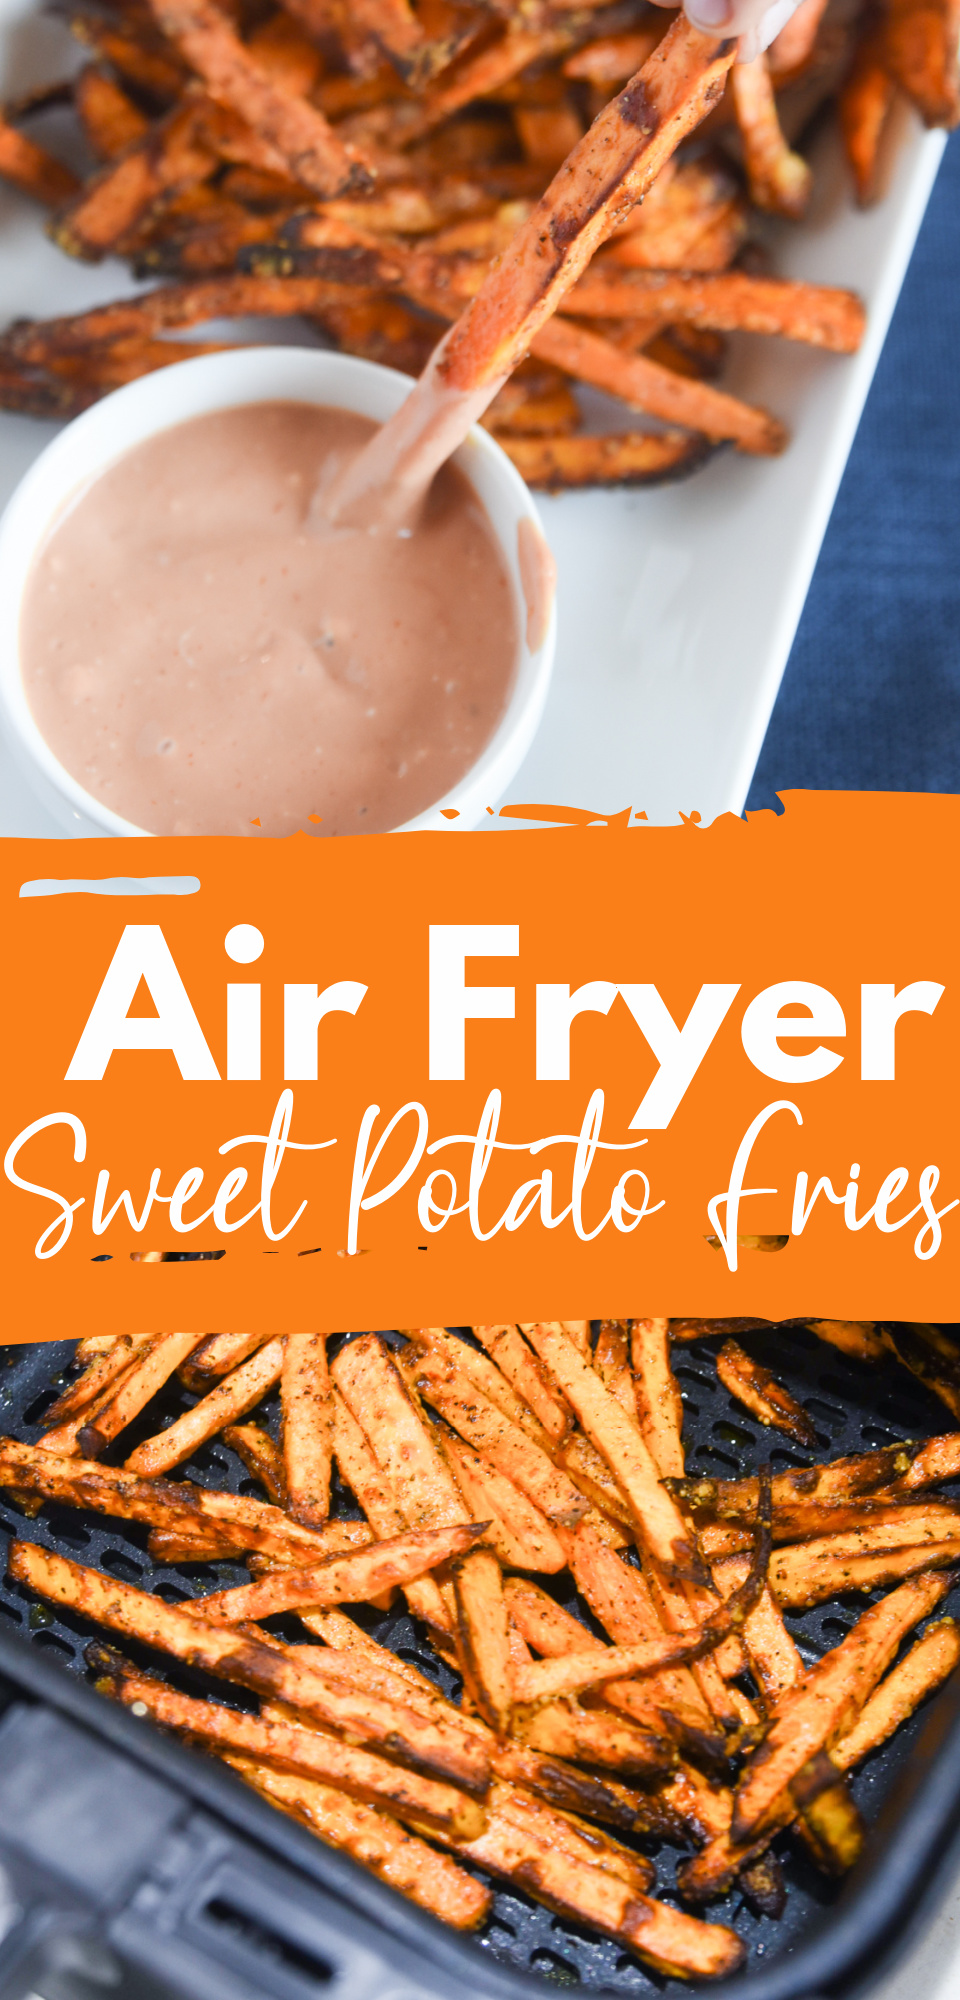 Looking for a lighter version of traditional deep-fried sweet potato fries? Now you can make delicious, crispy, and healthy sweet potato fries in an air fryer! via @simplysidedishes89